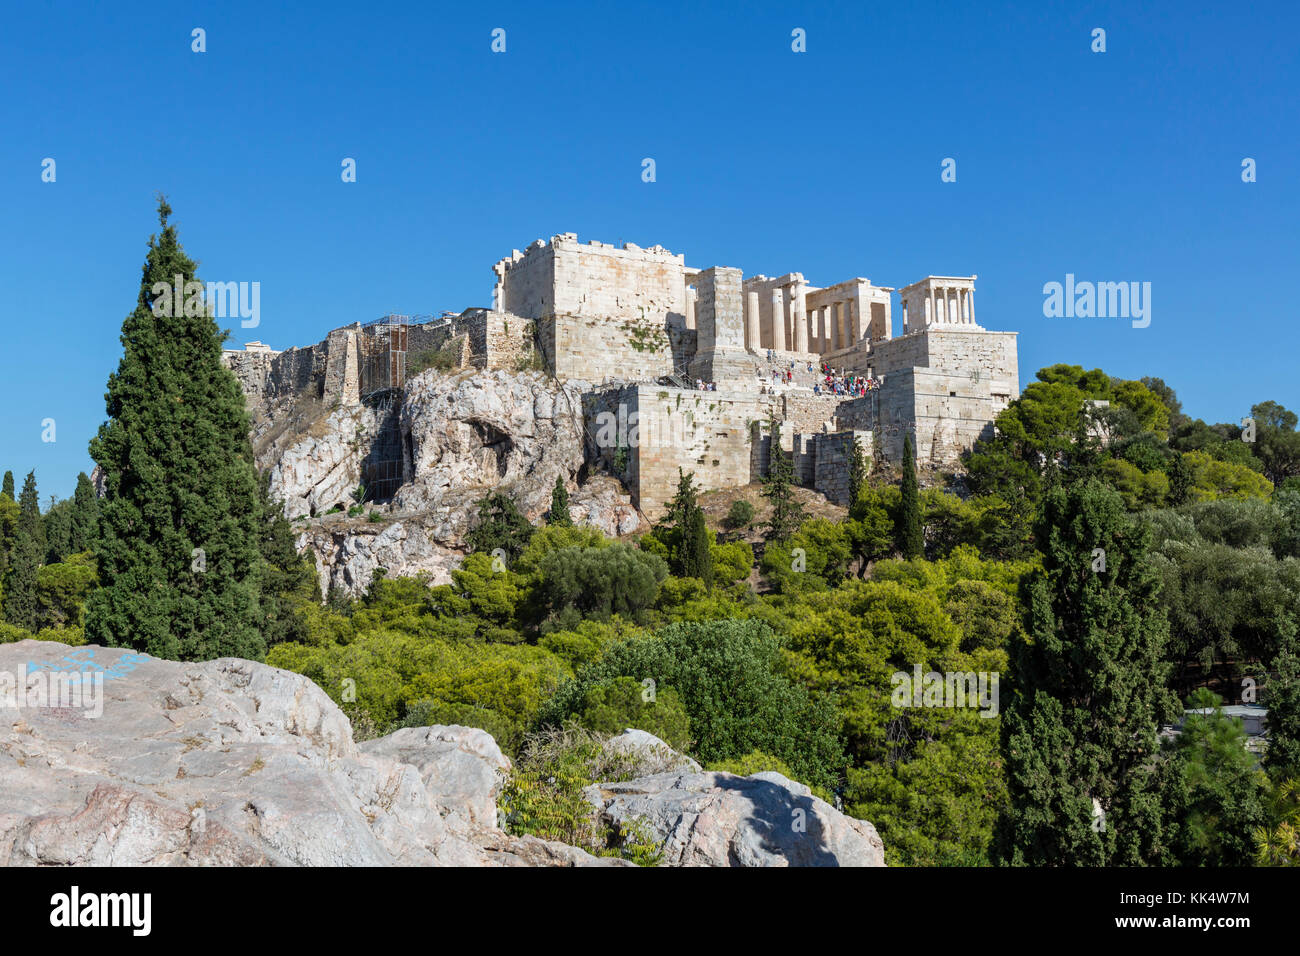 View of the Acropolis from Areopagus Hill with the Propylaea to the fore, Athens, Greece Stock Photo